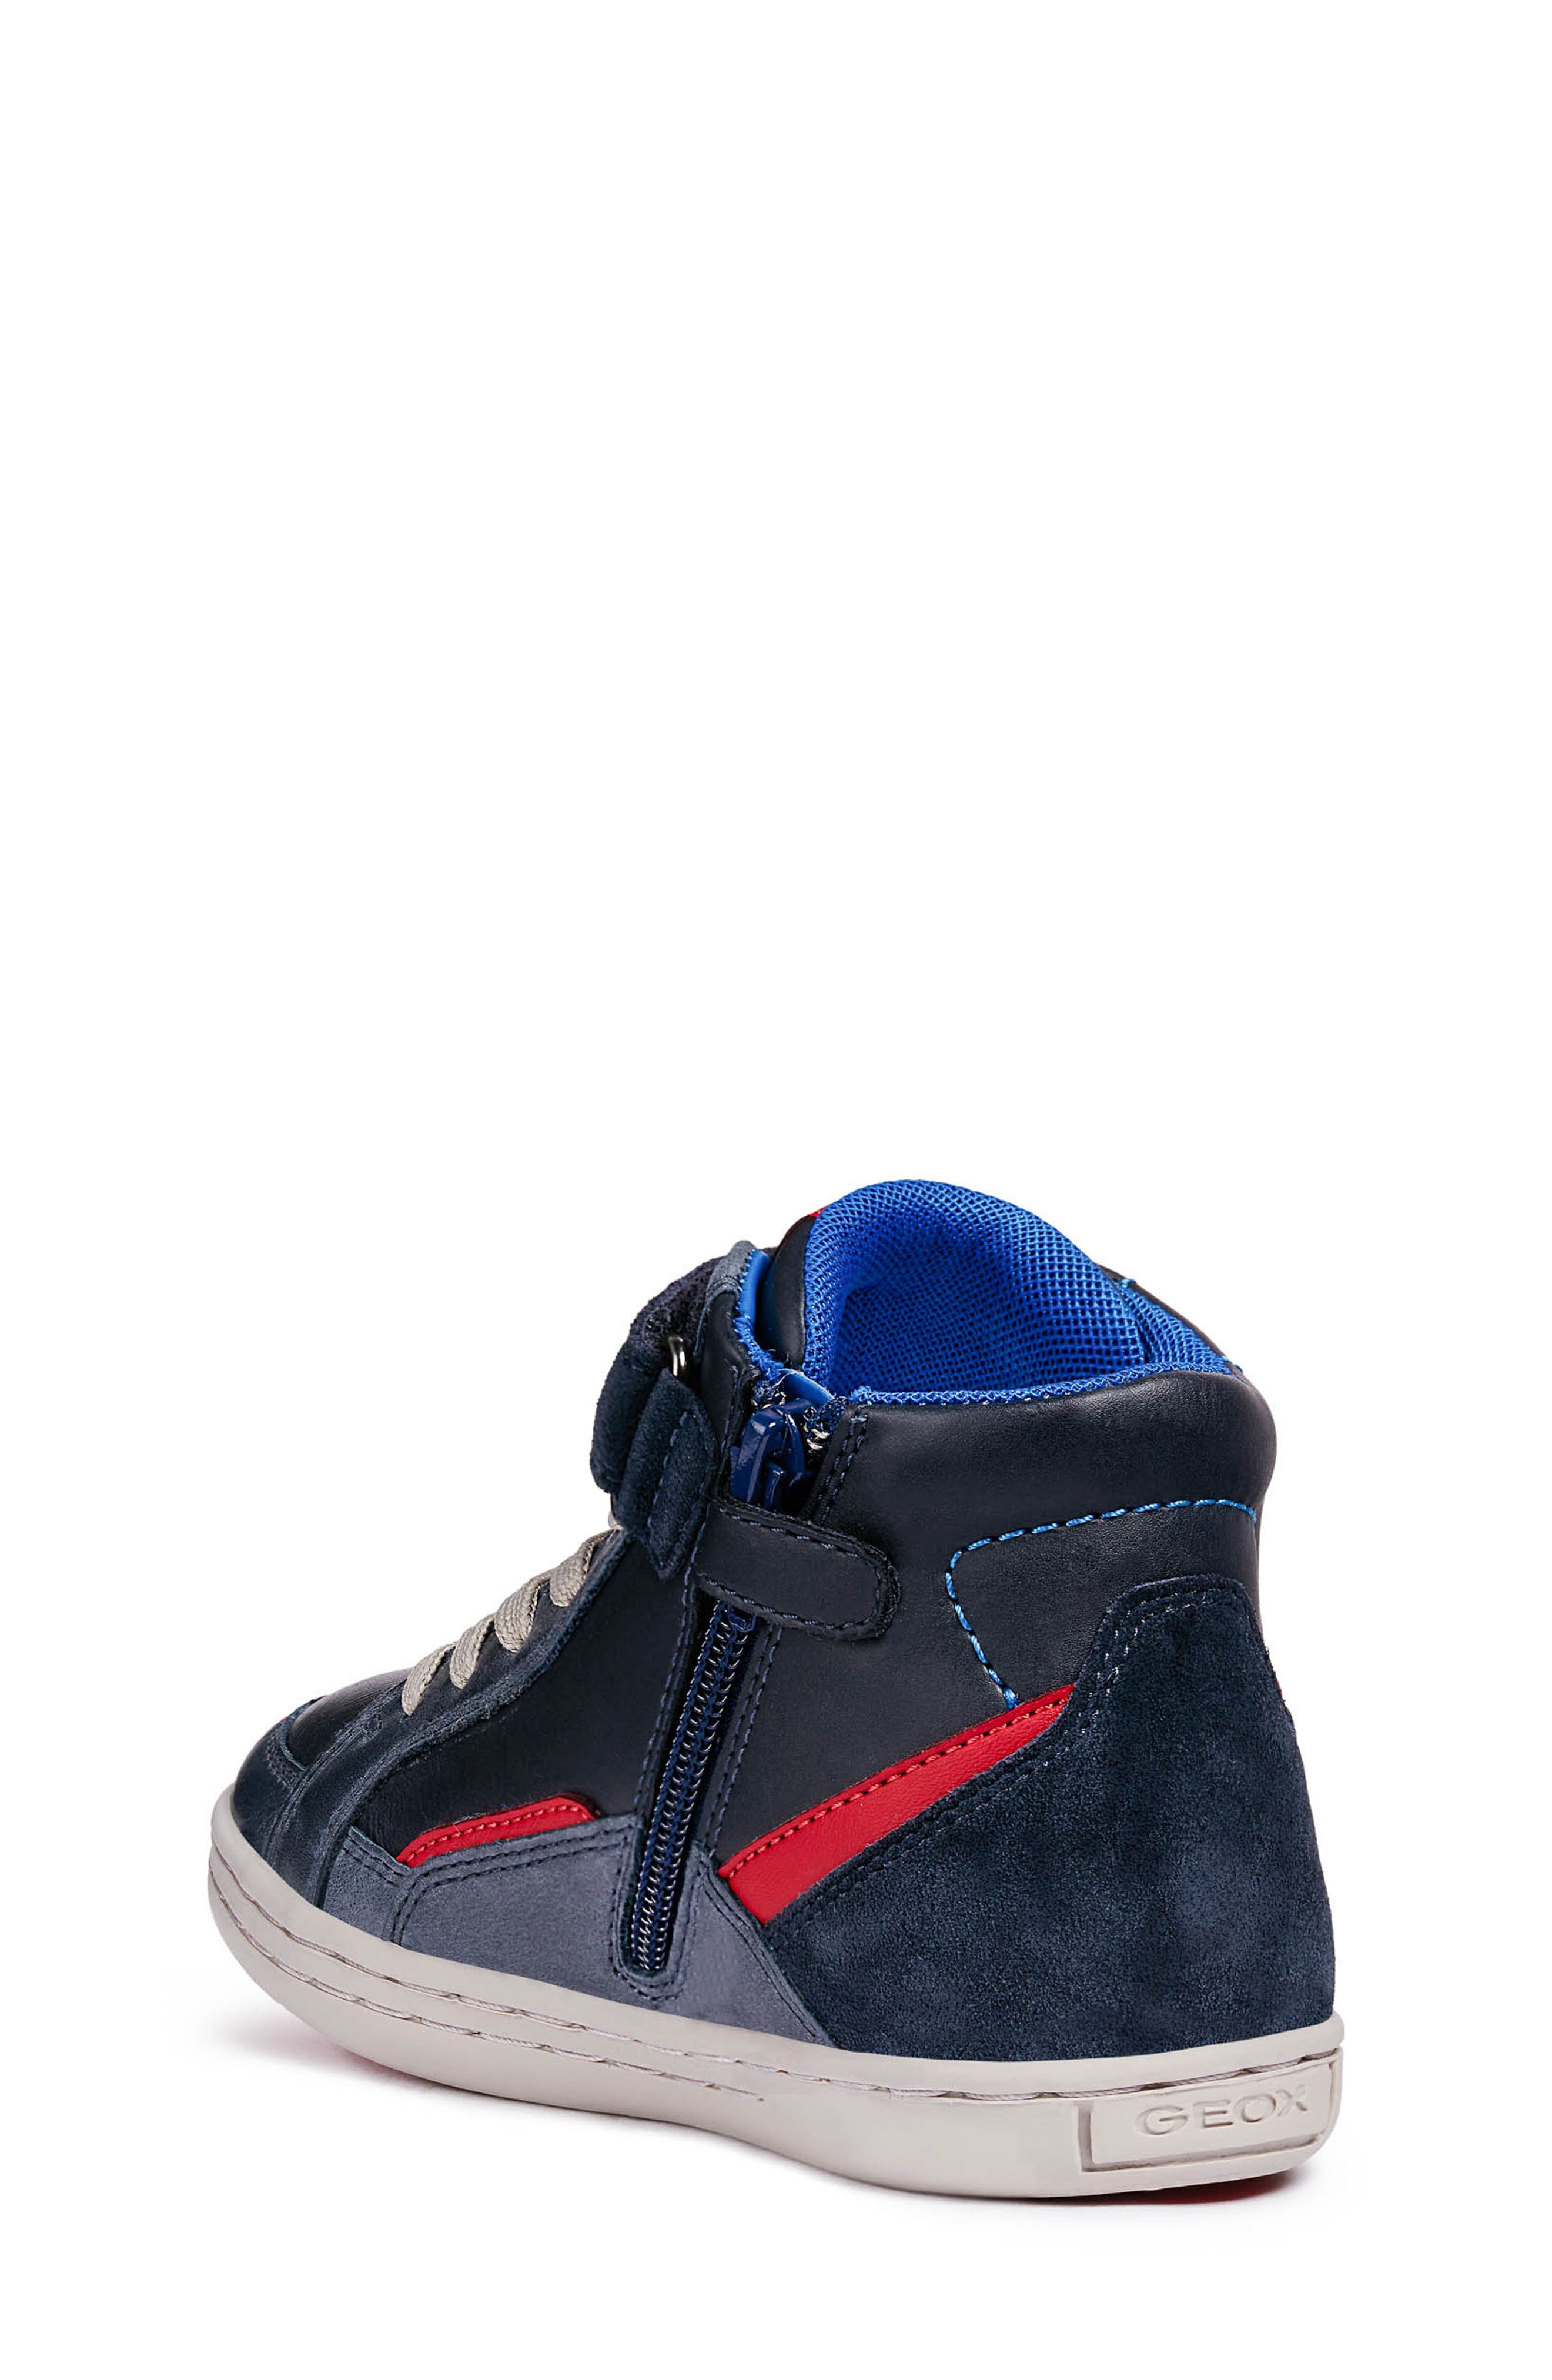 GEOX,                             Garcia Mid Sneaker,                             Alternate thumbnail 2, color,                             401